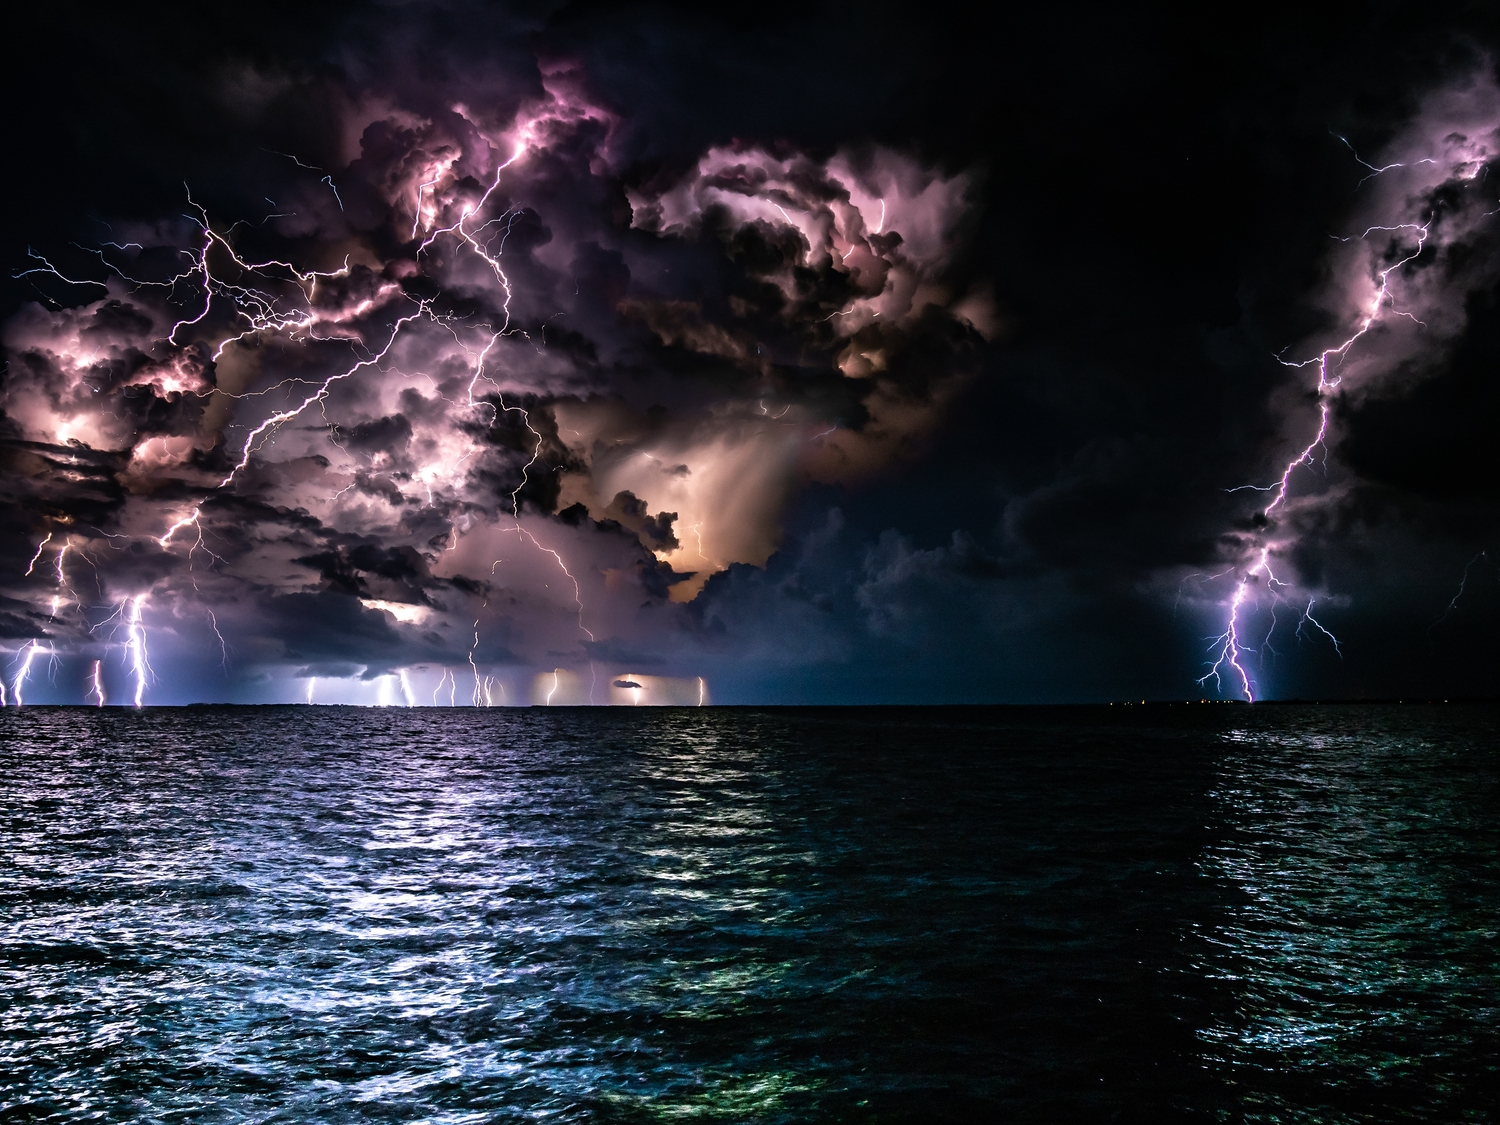 Many lightening strikes in a stormy sky overlooking the ocean